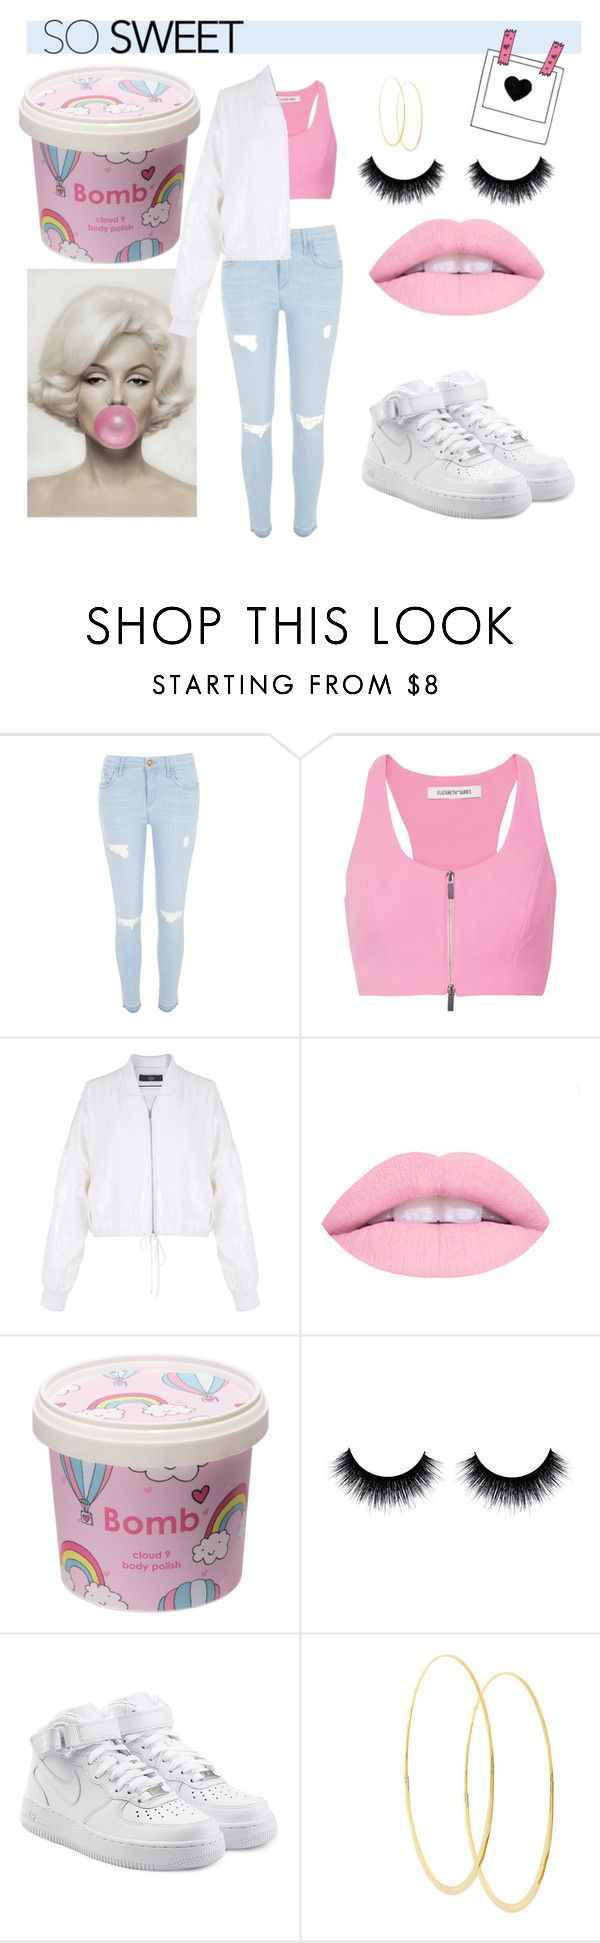 """""""SO sweet"""" by eviejessup on Polyvore featuring River Island, Elizabeth and James, TIBI, Cloud 9, NIKE and Lana"""